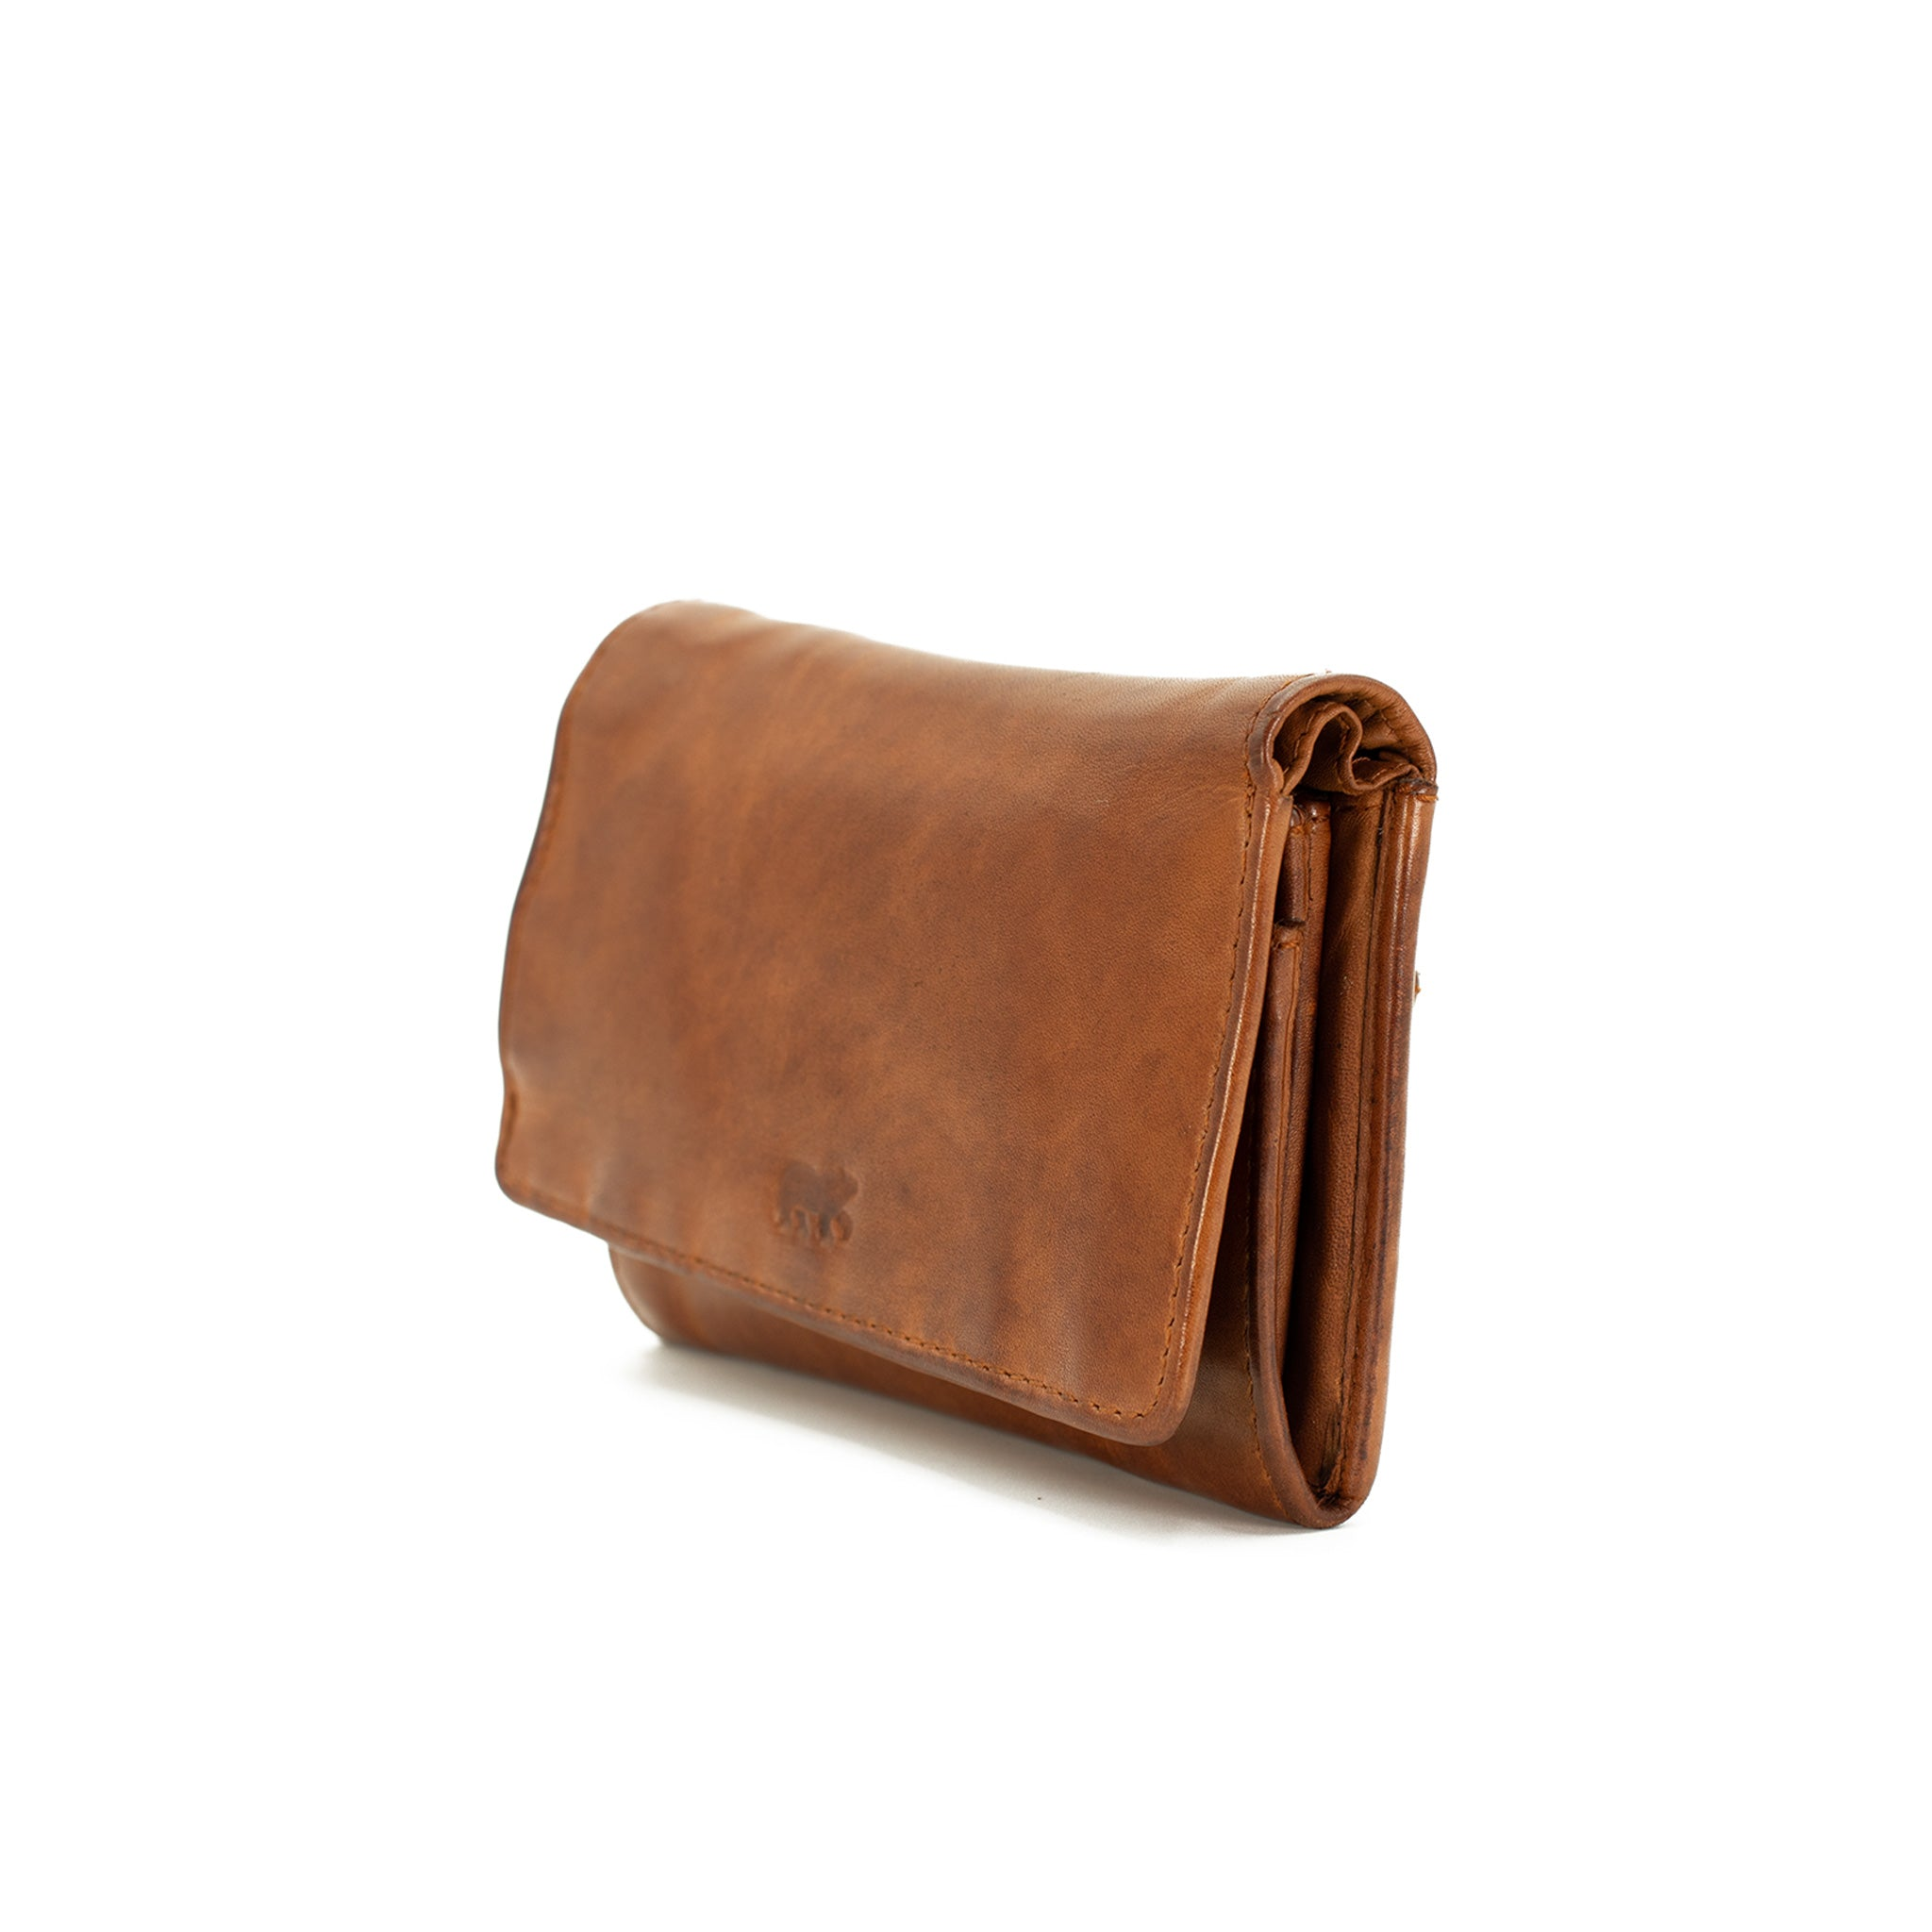 Classic Leather Purse By Bear Design